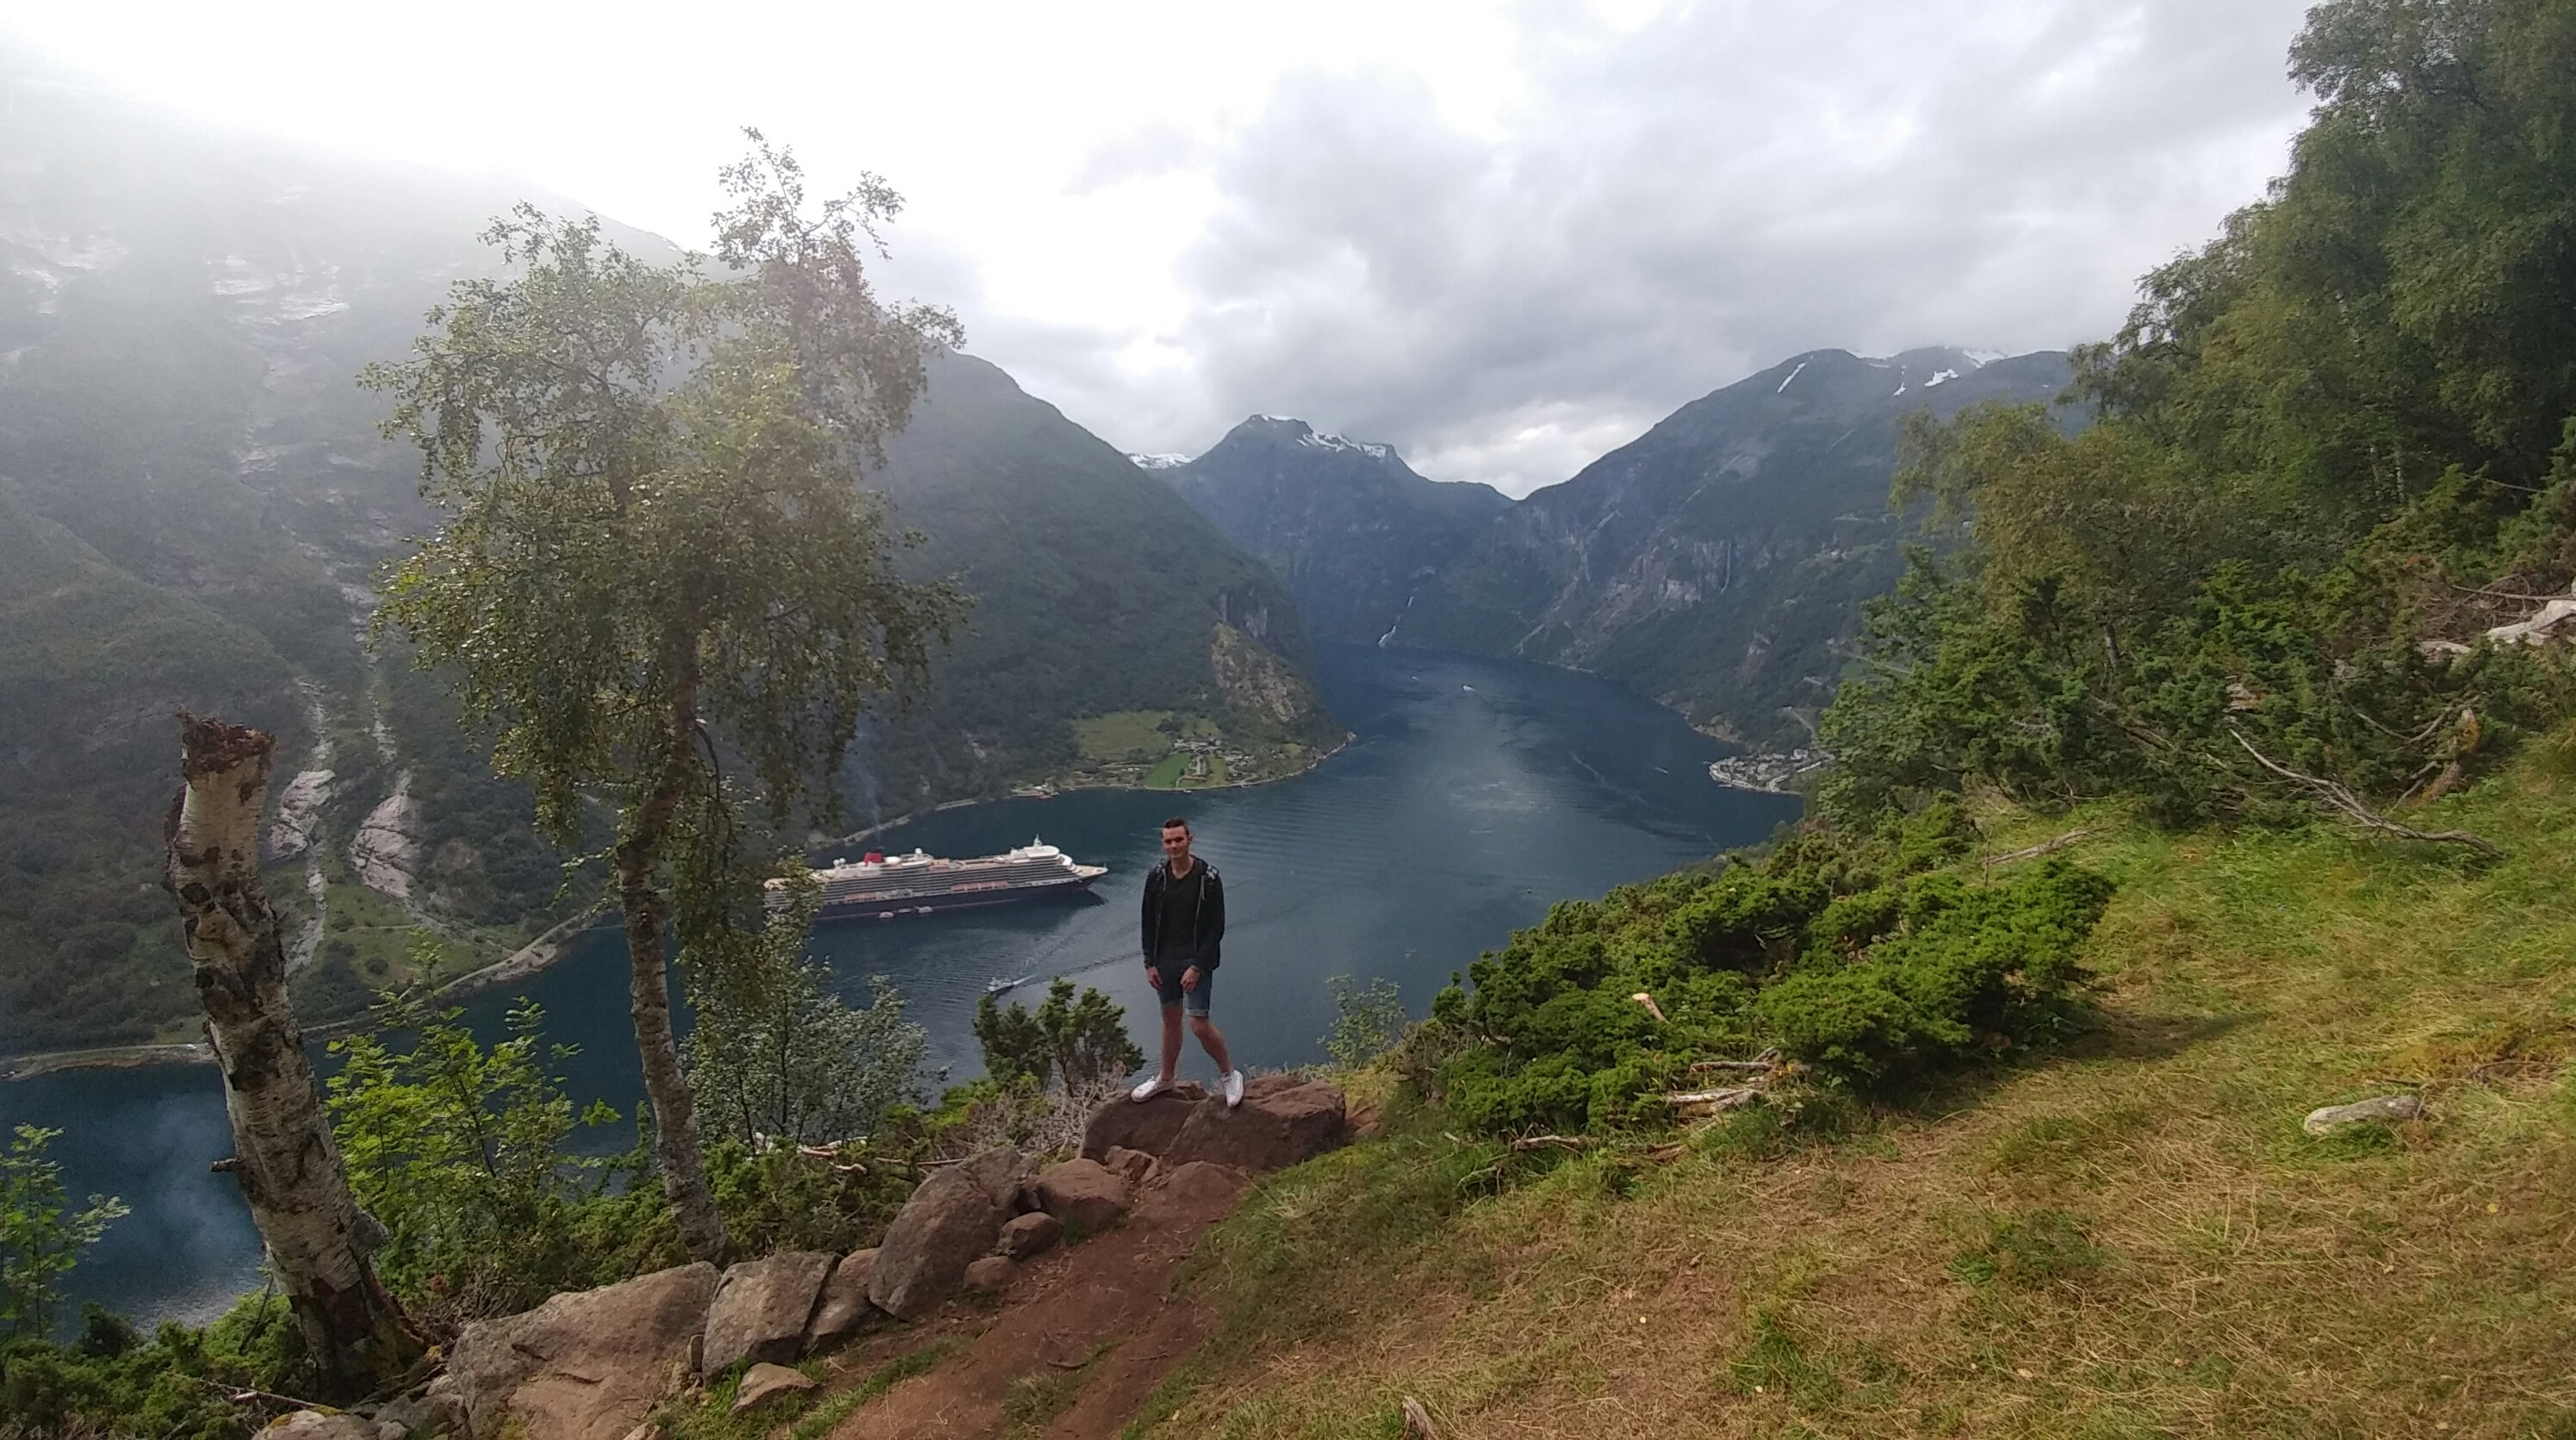 Conquering Geiranger, a monster of a fjord, in Norway